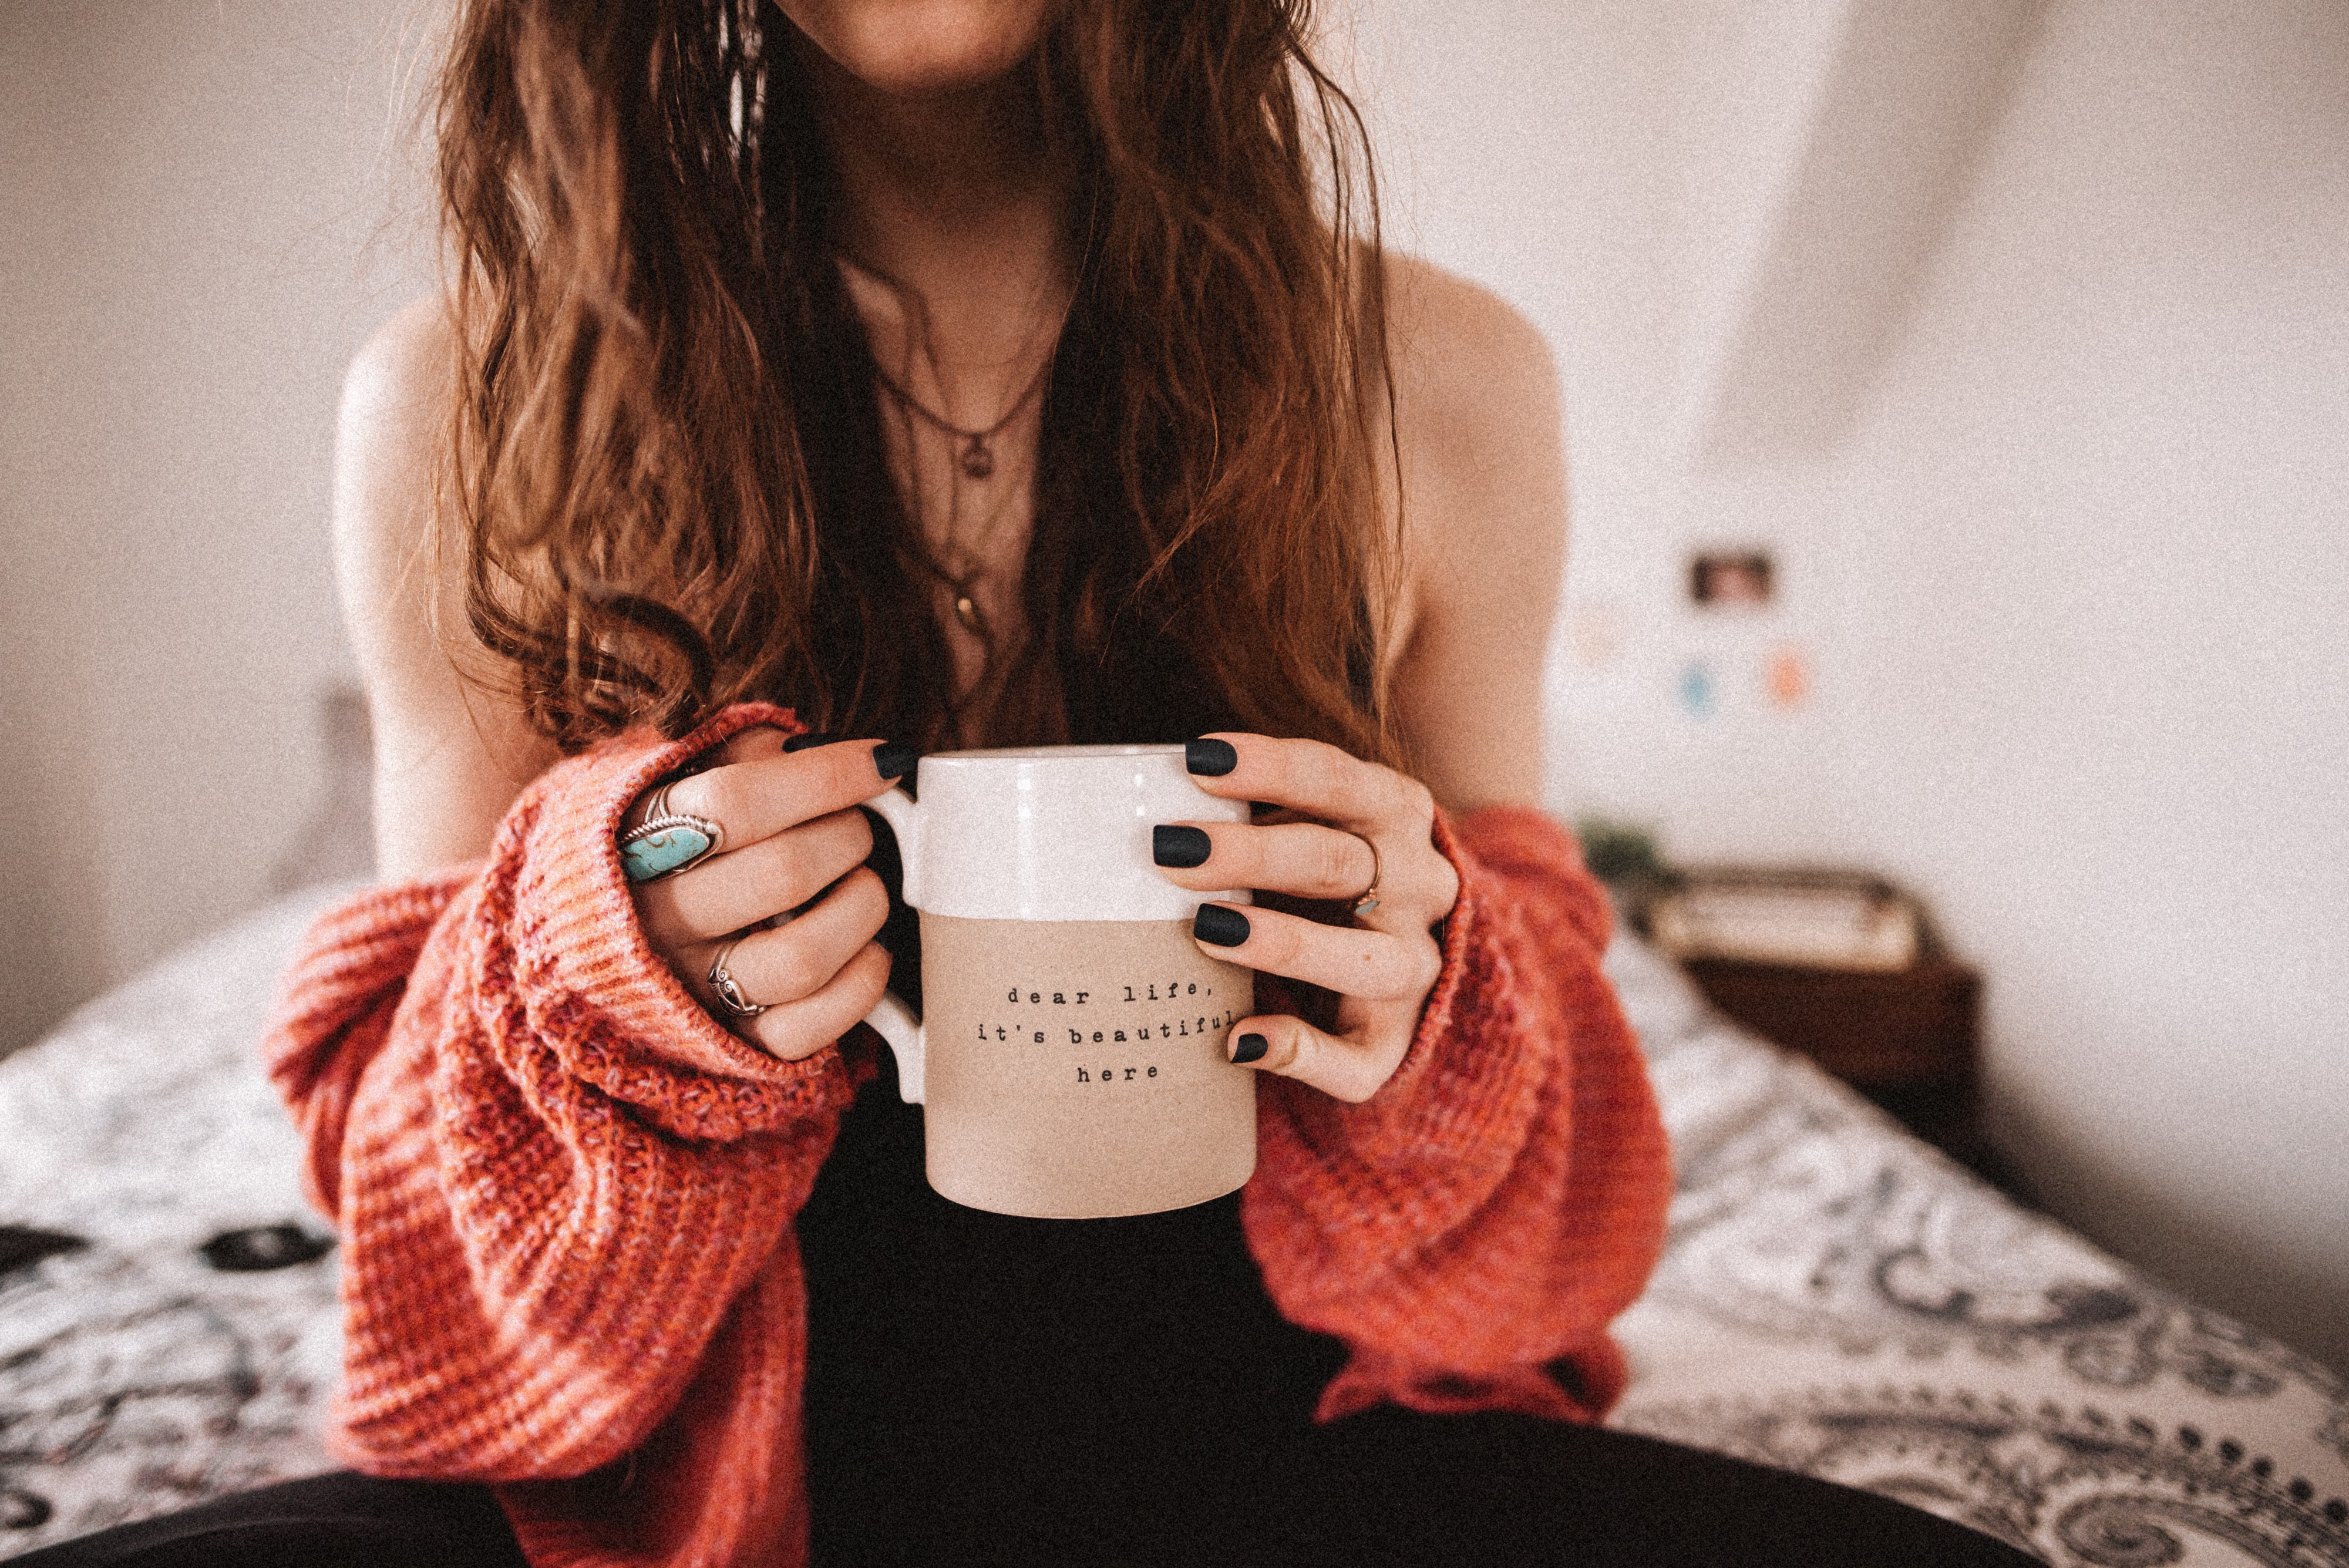 """A person sits on a bed while holding a coffee cup that reads """"dear life, it's beautiful here."""""""